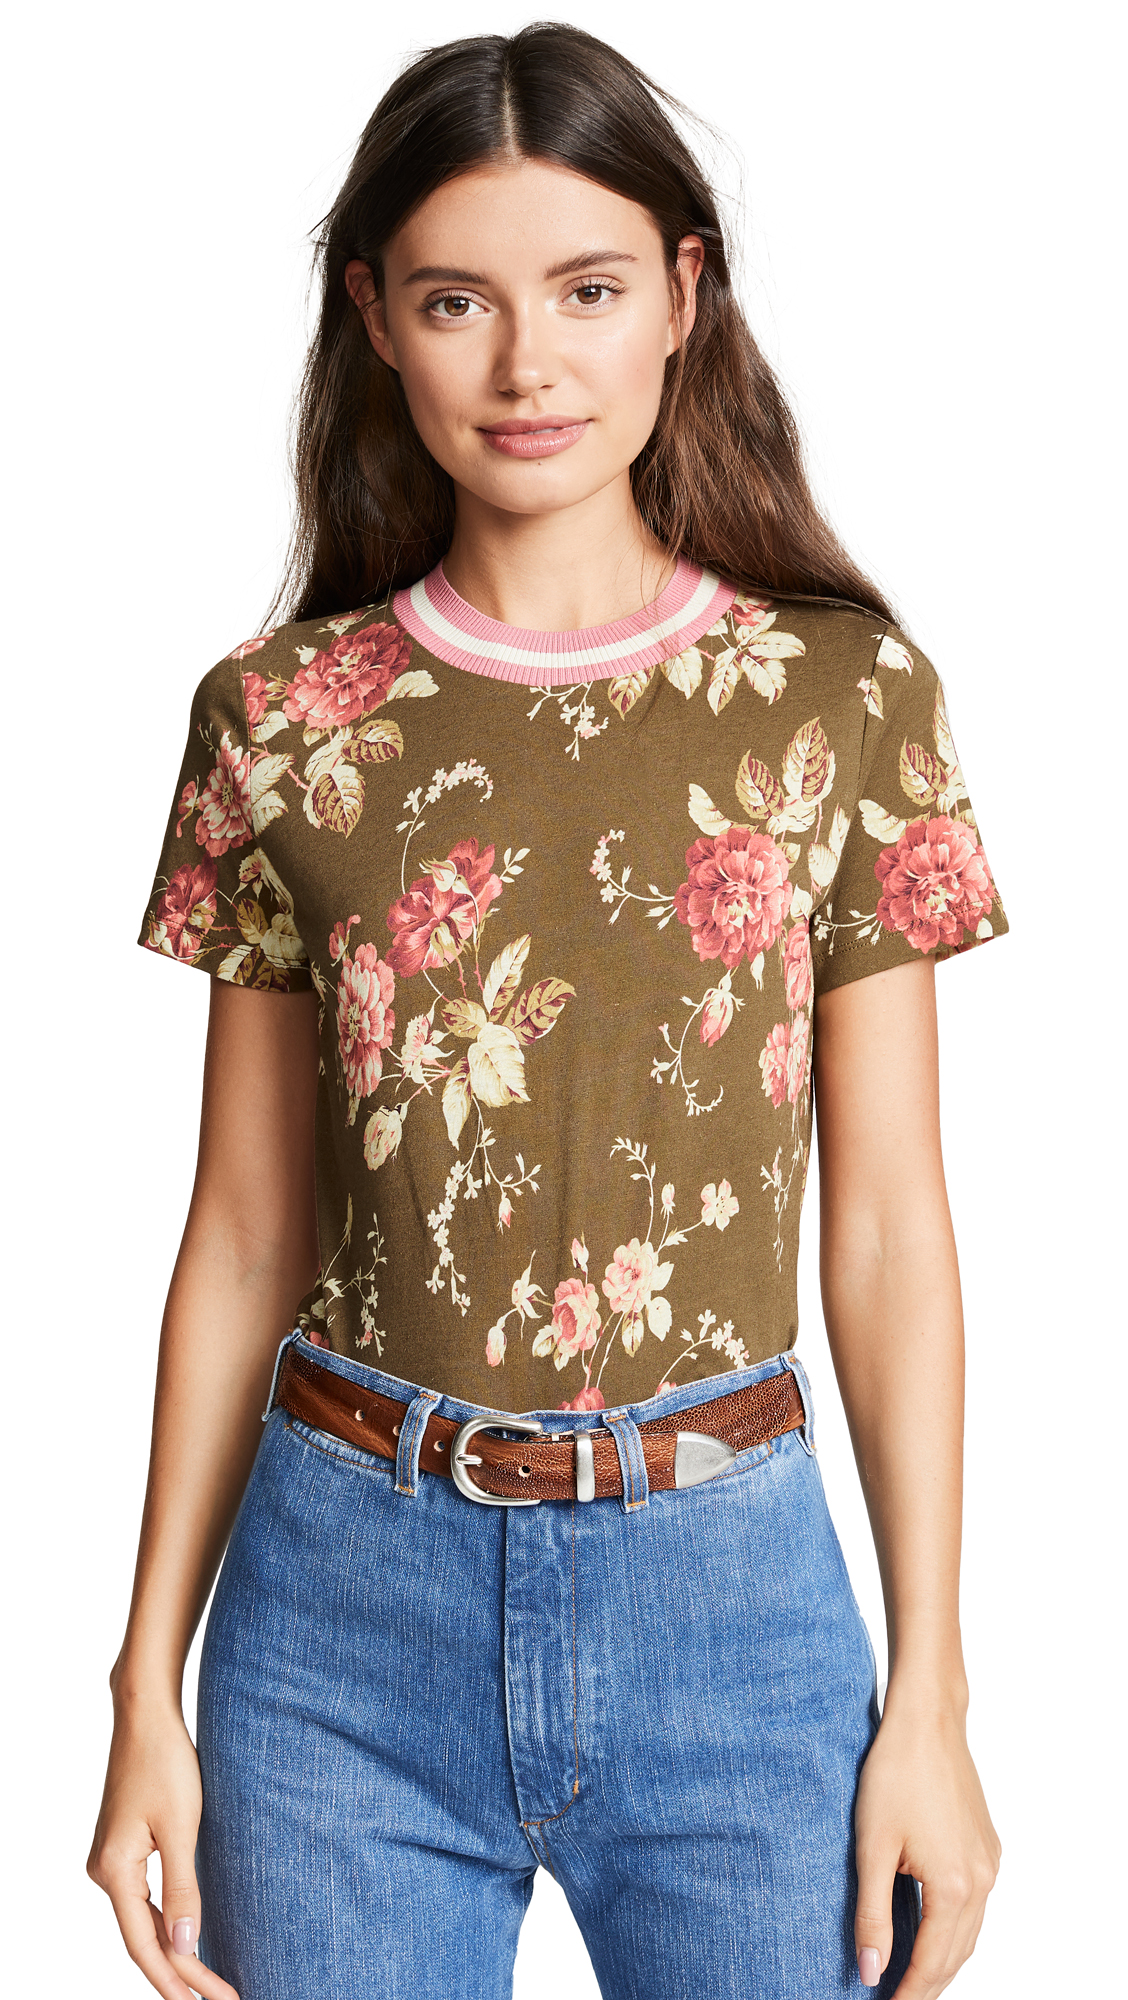 Zimmermann Fleeting Tee In Olive Garden Floral